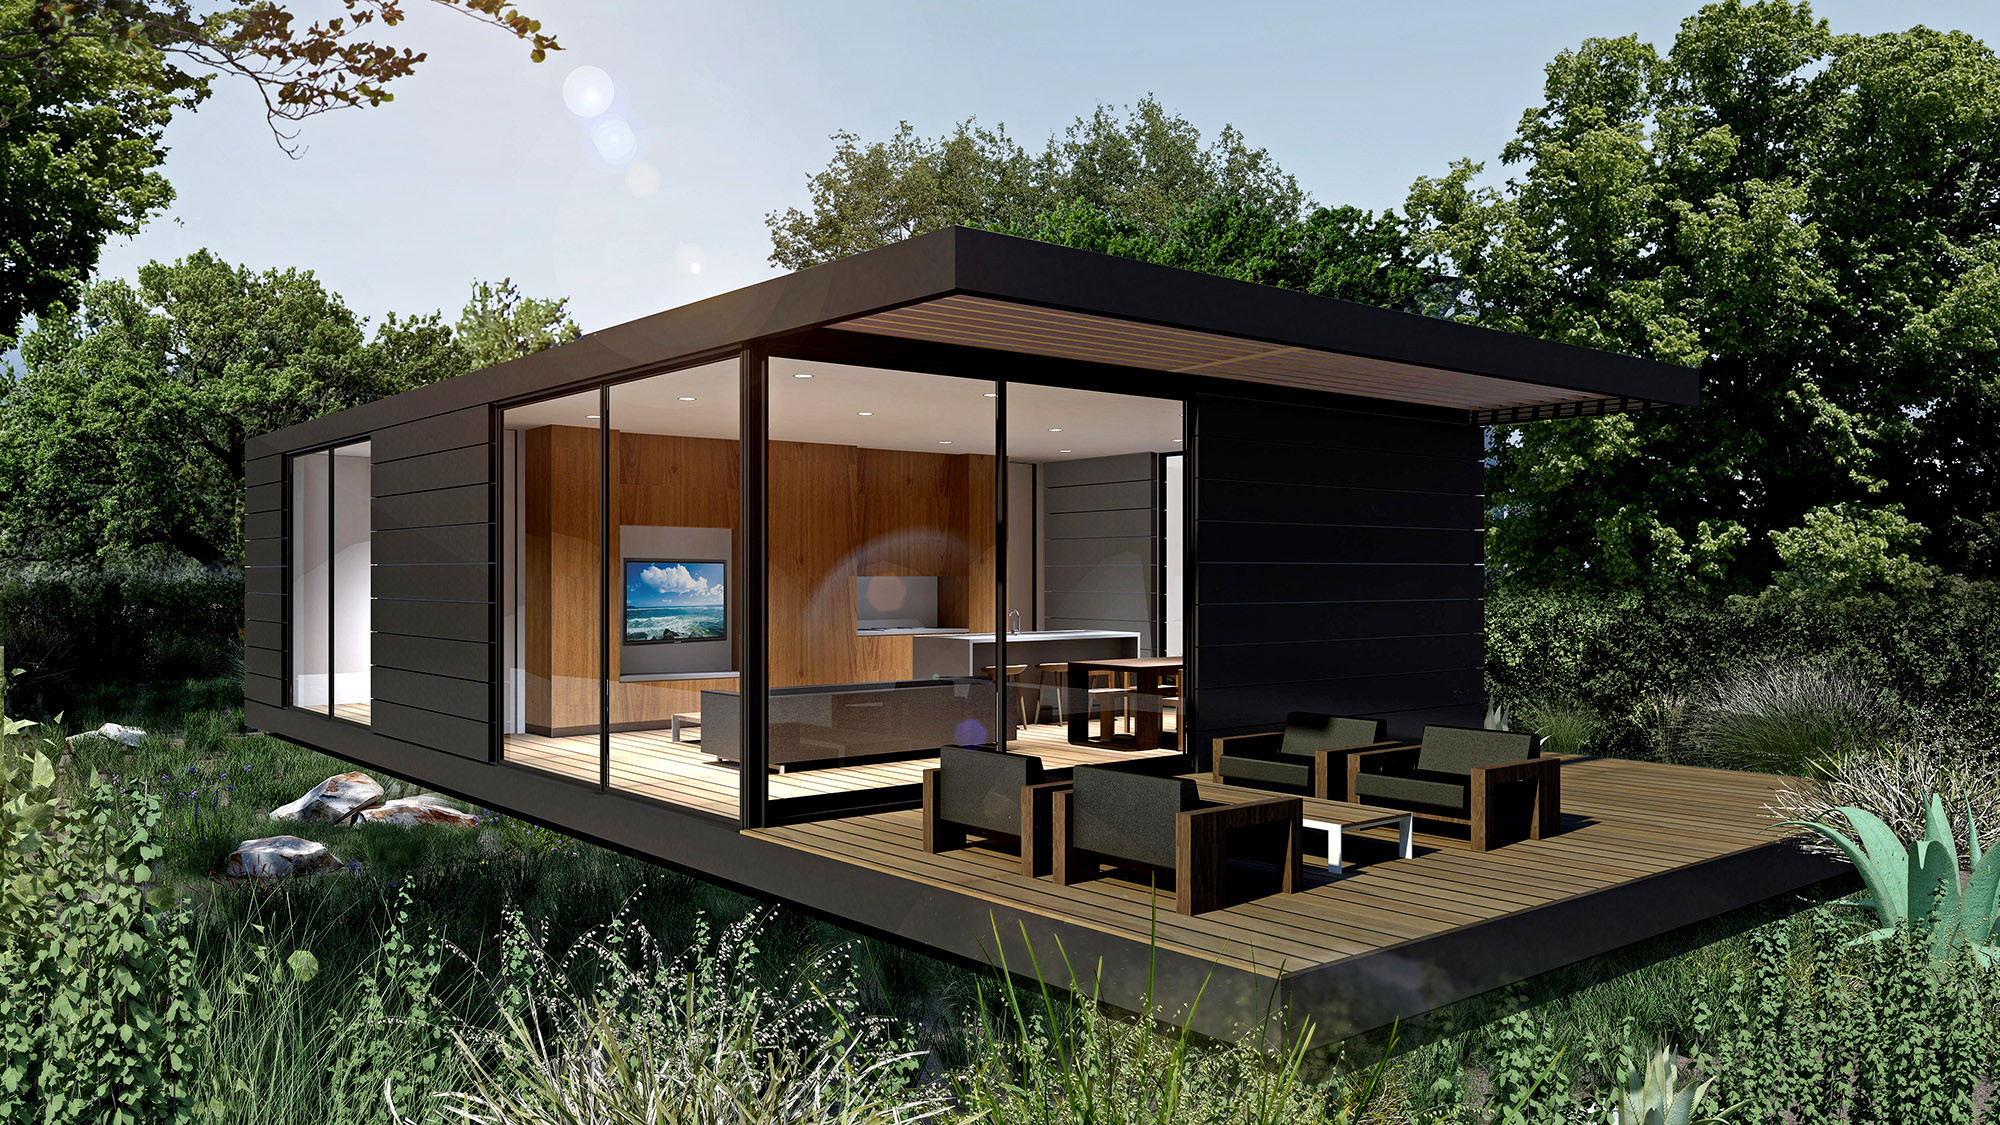 Premanufactured Homes prefab homes for sophisticated tastes - la times